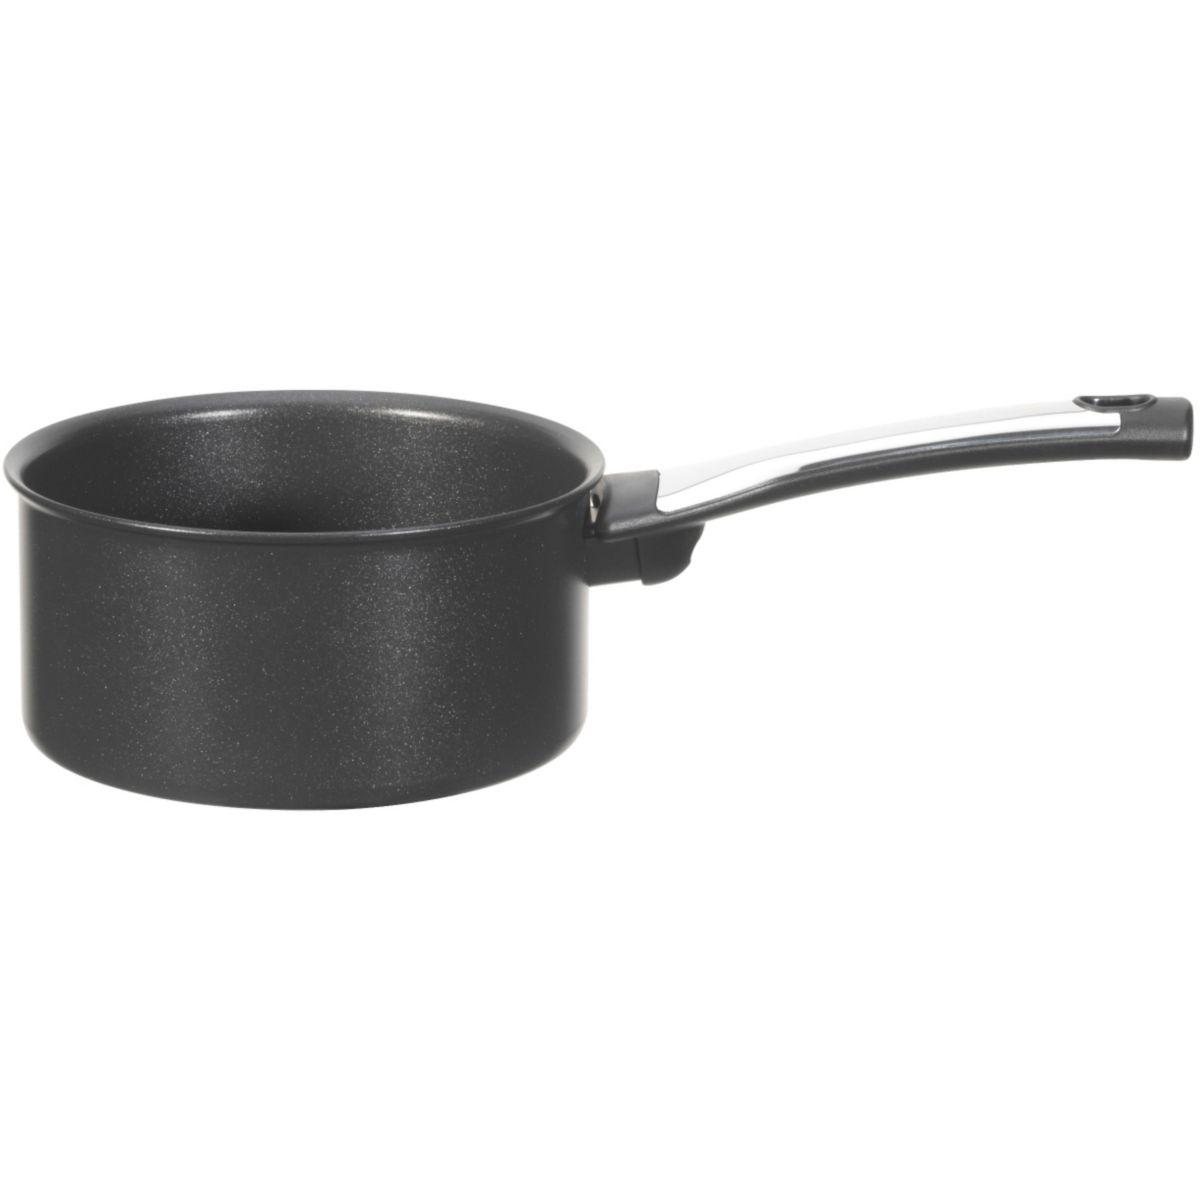 Casserole tefal talent pro Ø16cm - 10% de remise immédiate avec le code : cool10 (photo)